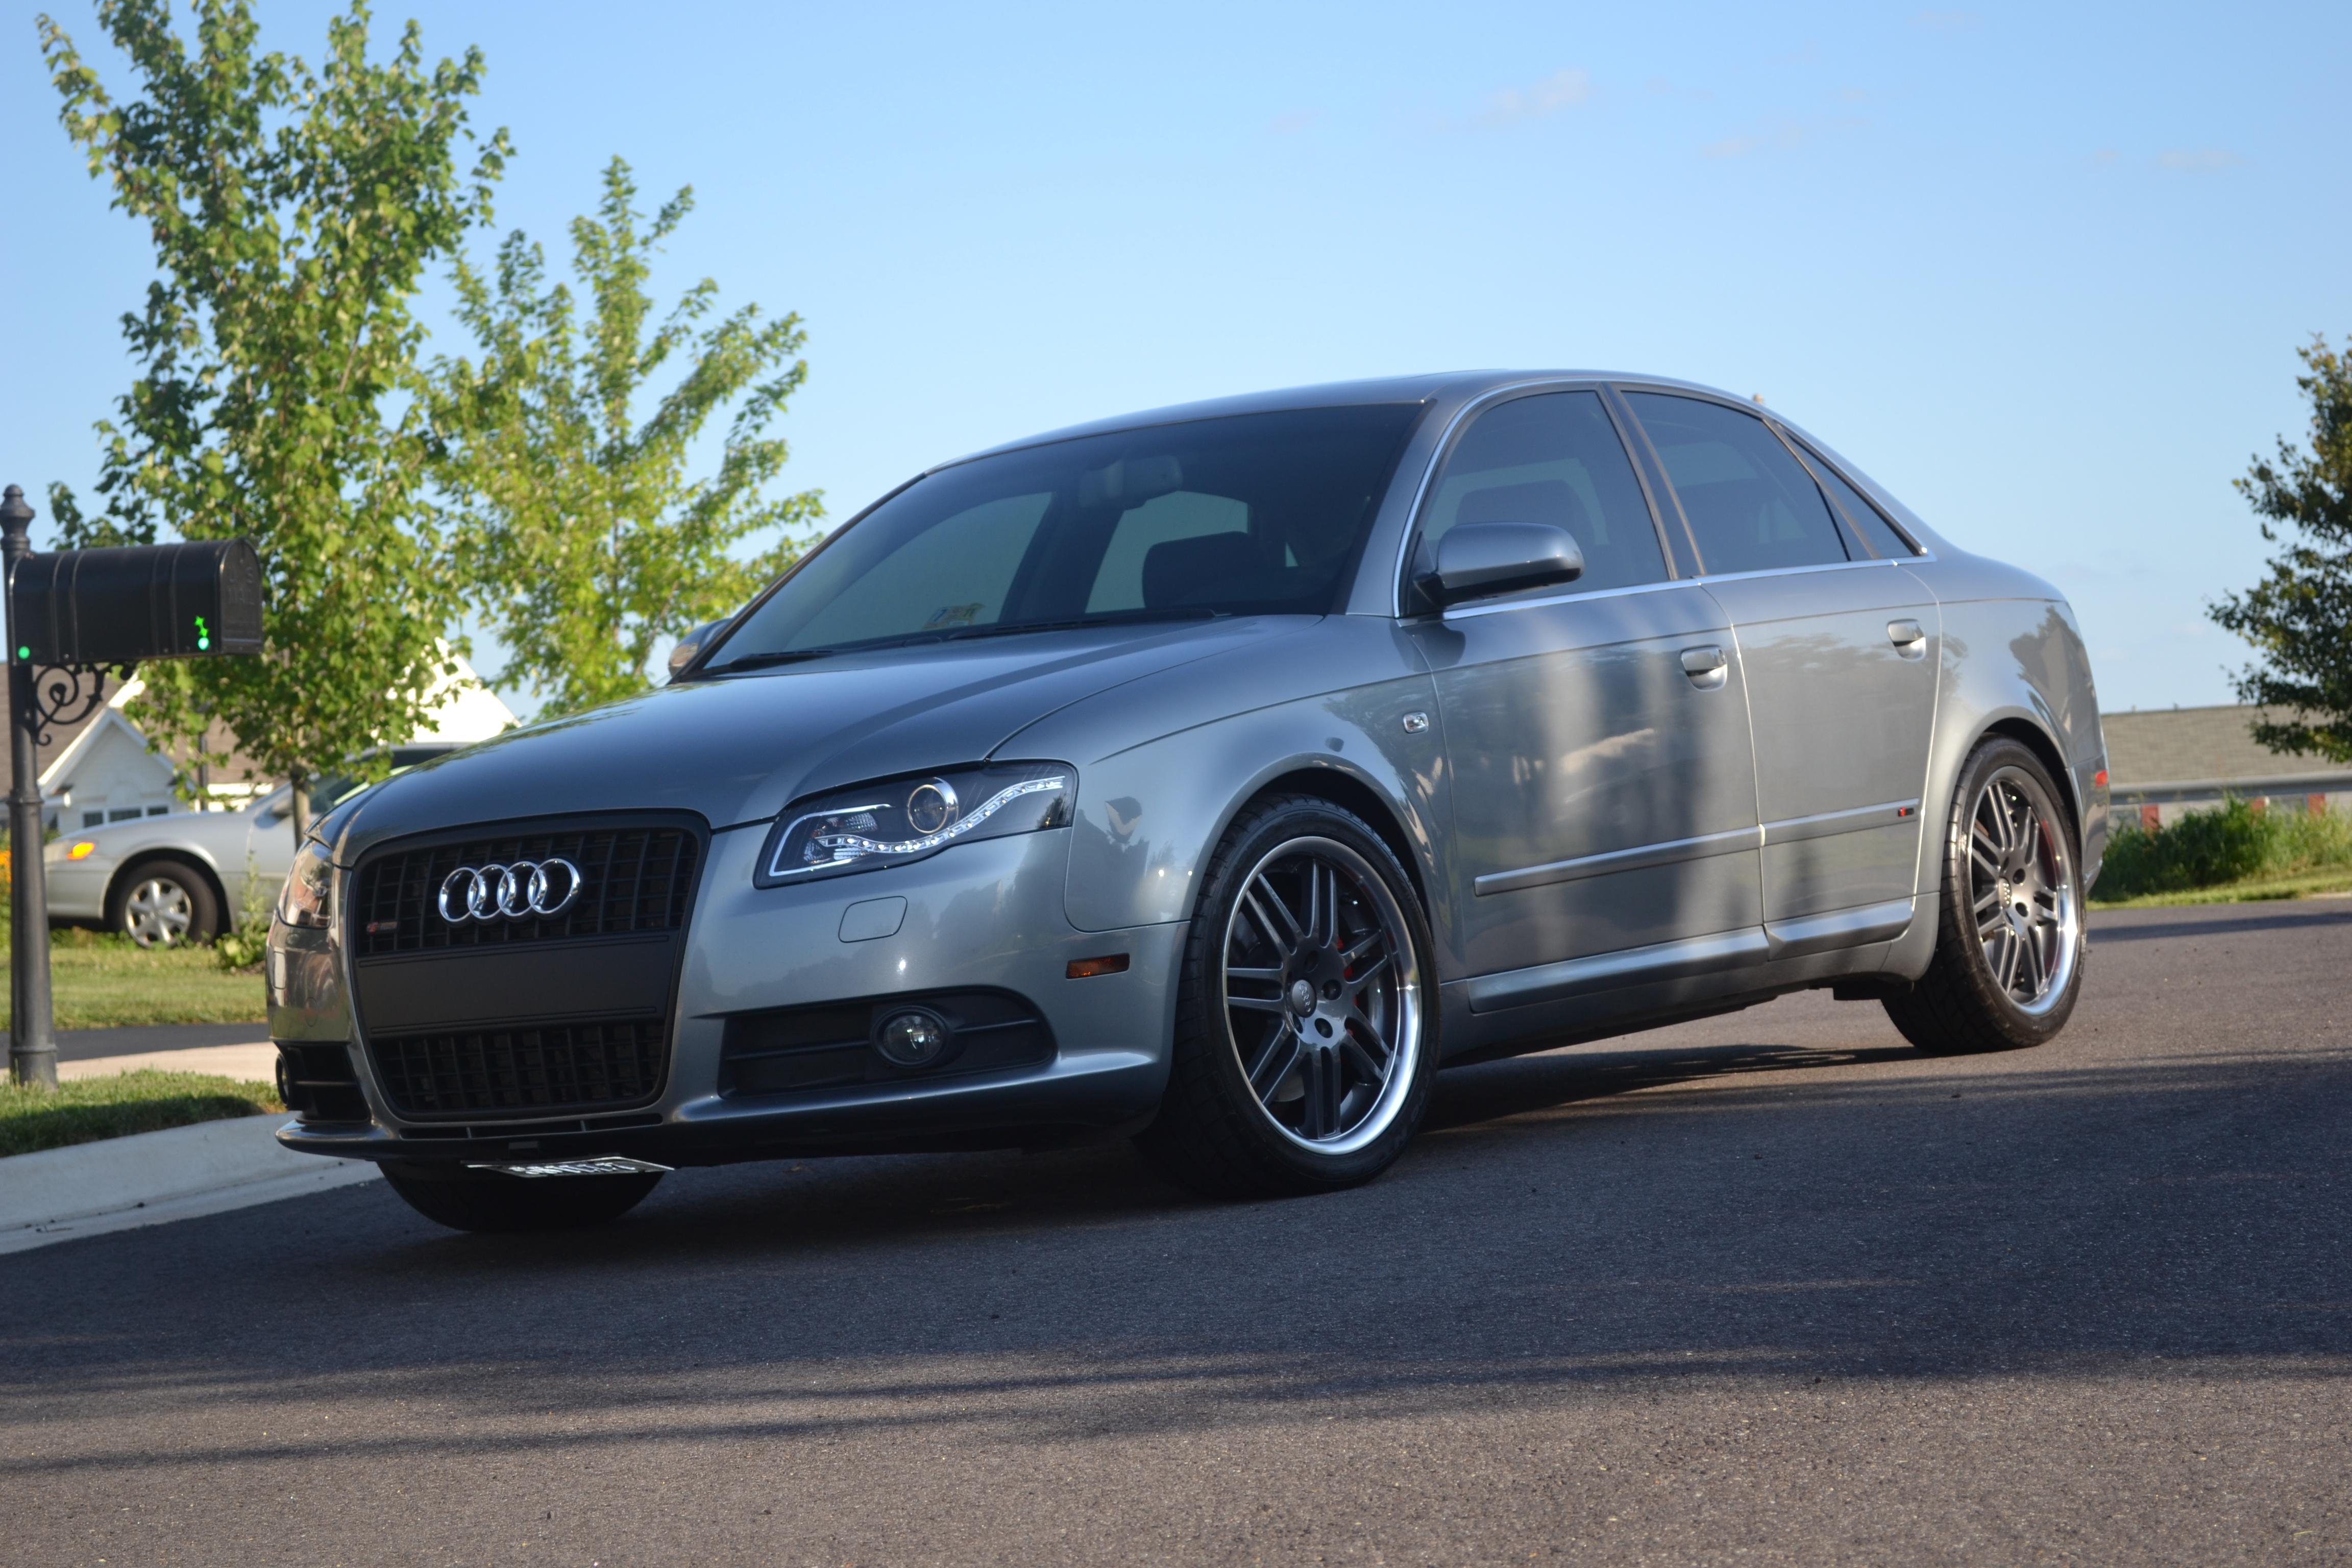 mattschaeffer81 39 s 2007 audi a4 2 0t quattro sedan 4d in culpeper va. Black Bedroom Furniture Sets. Home Design Ideas